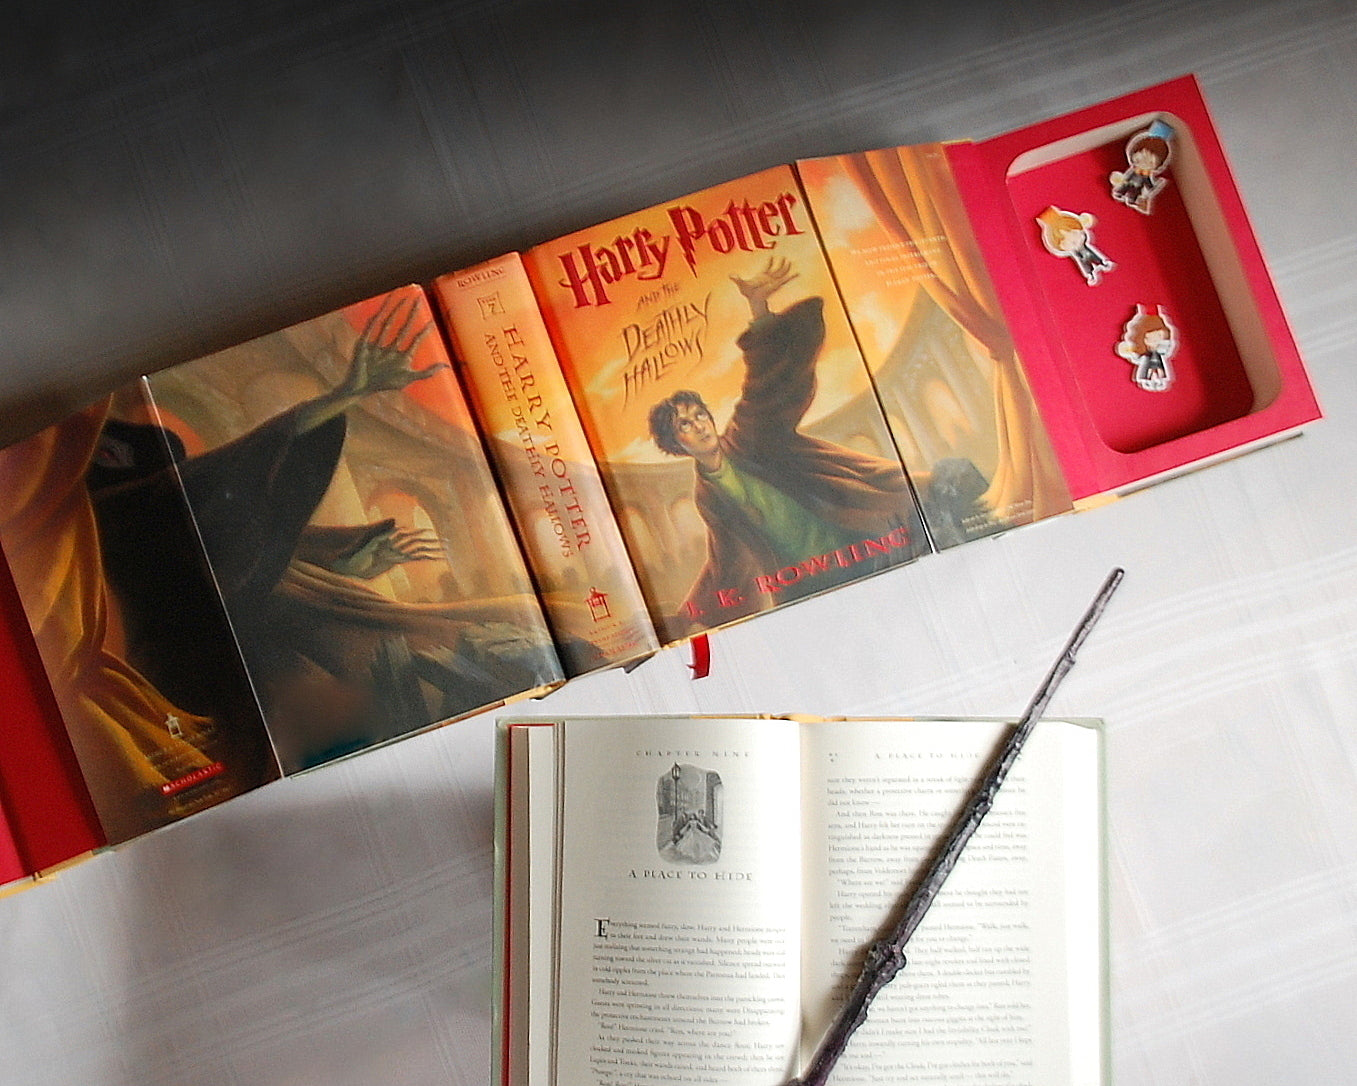 Harry Potter & the Deathly Hallows / J.K. Rowling